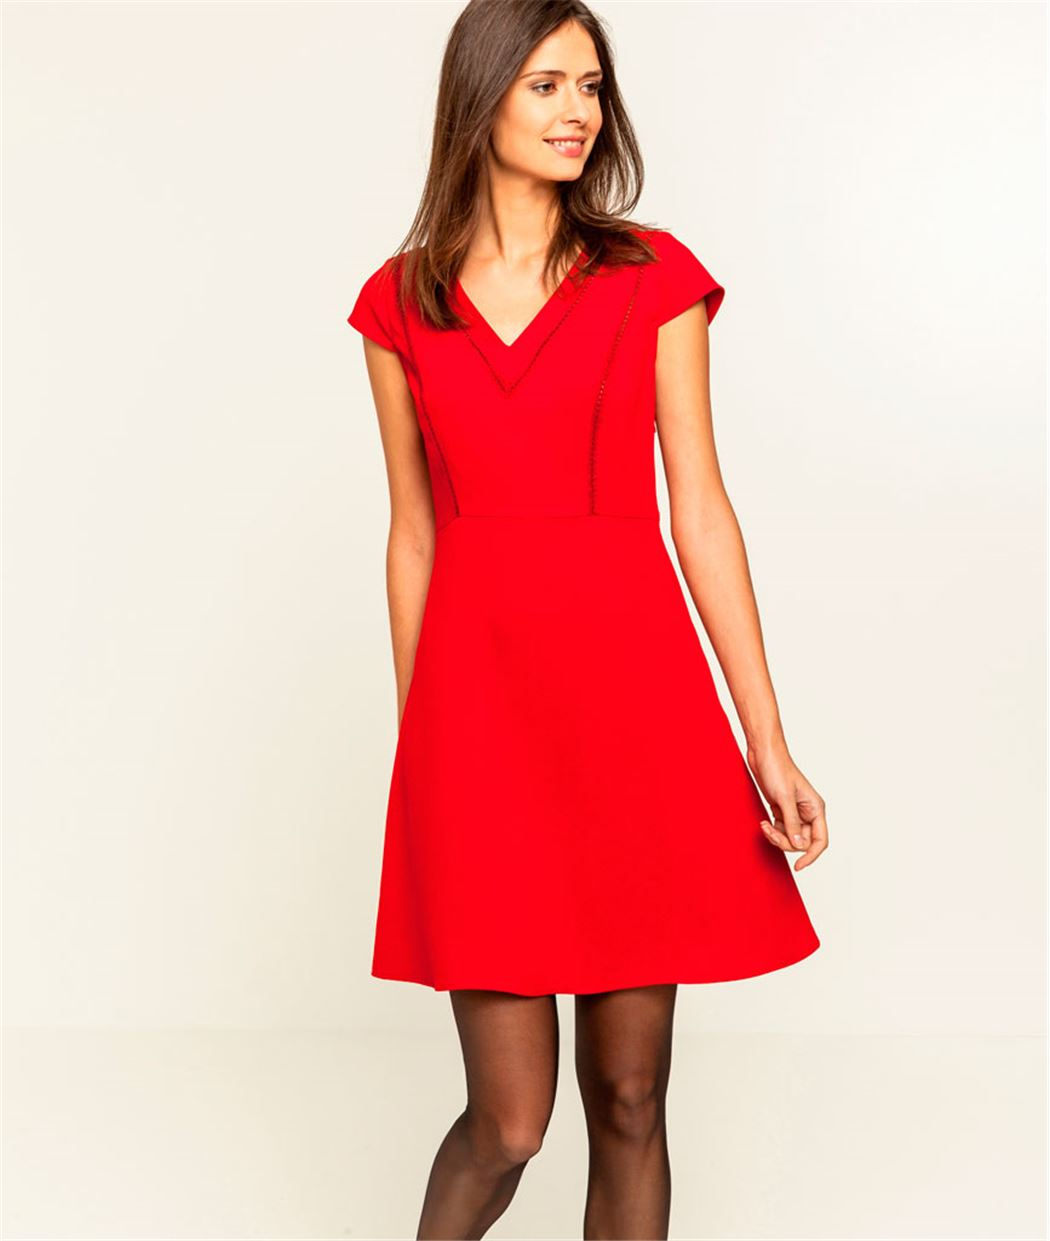 Robe unie patineuse ROUGE